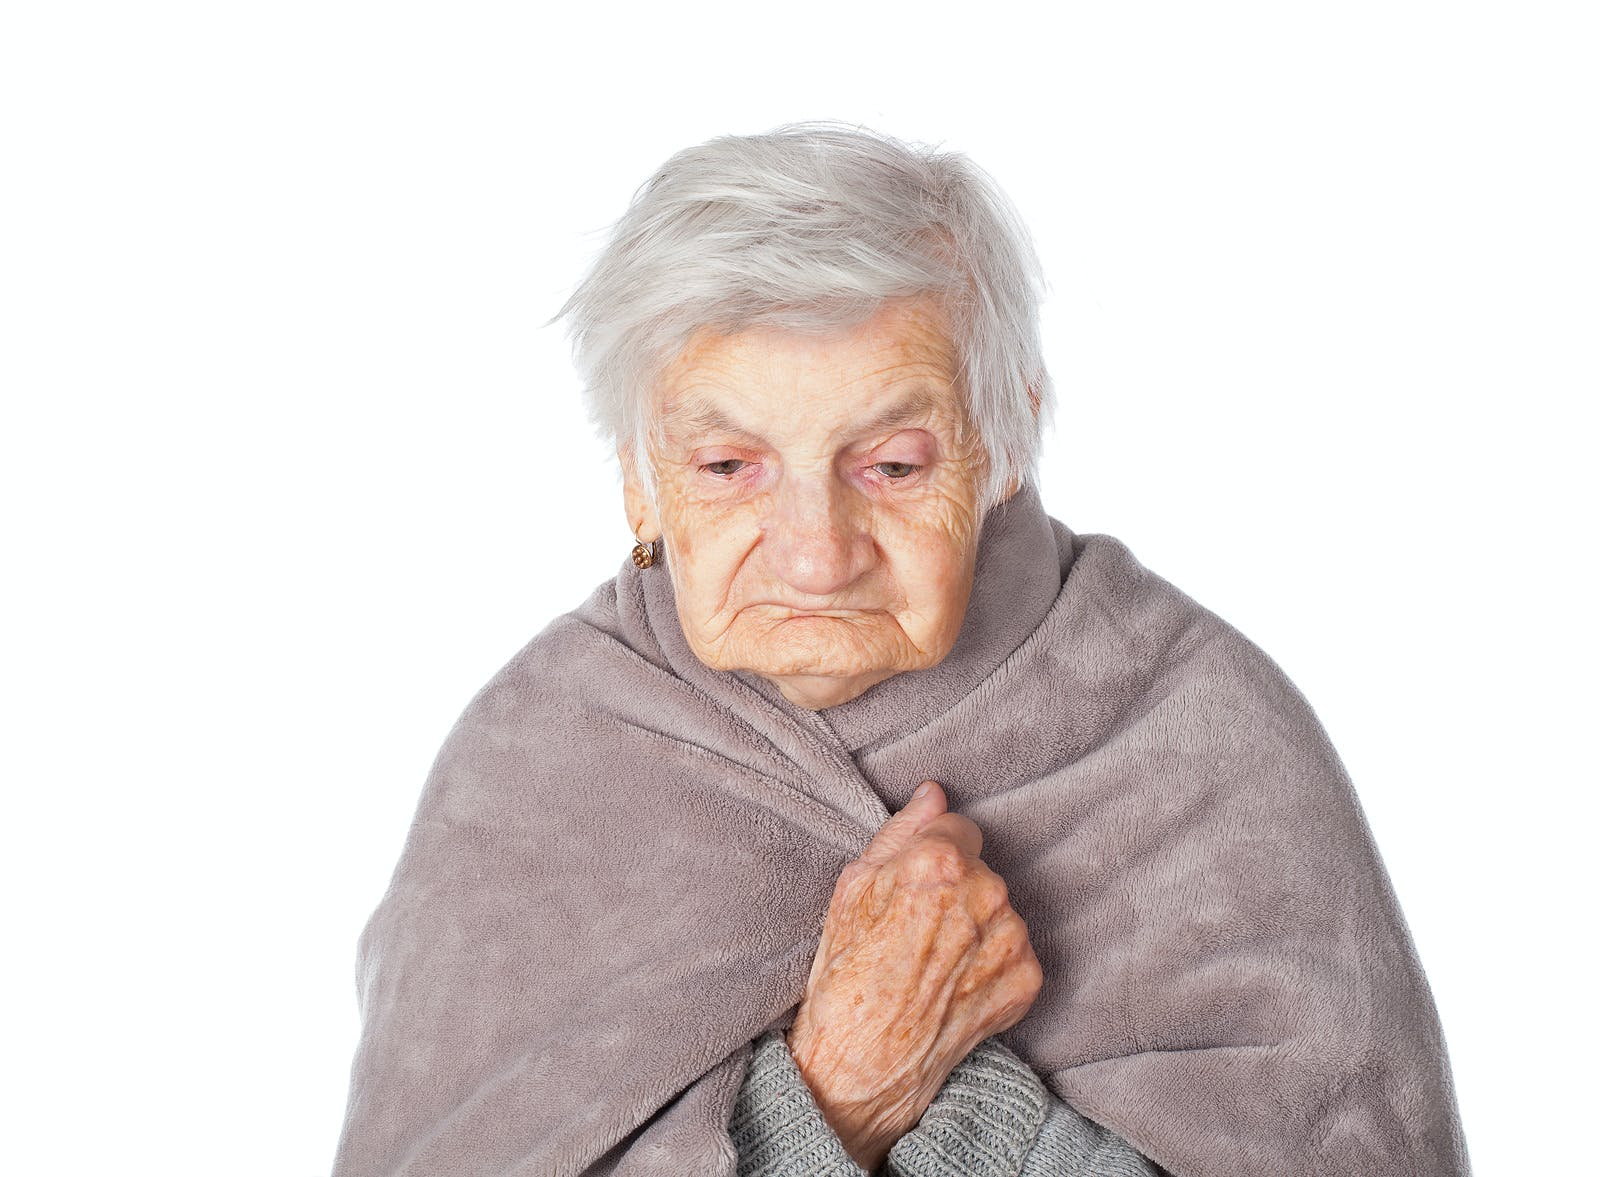 elderly woman wrapped in gray blanket due to respiratory infection, dementia genes